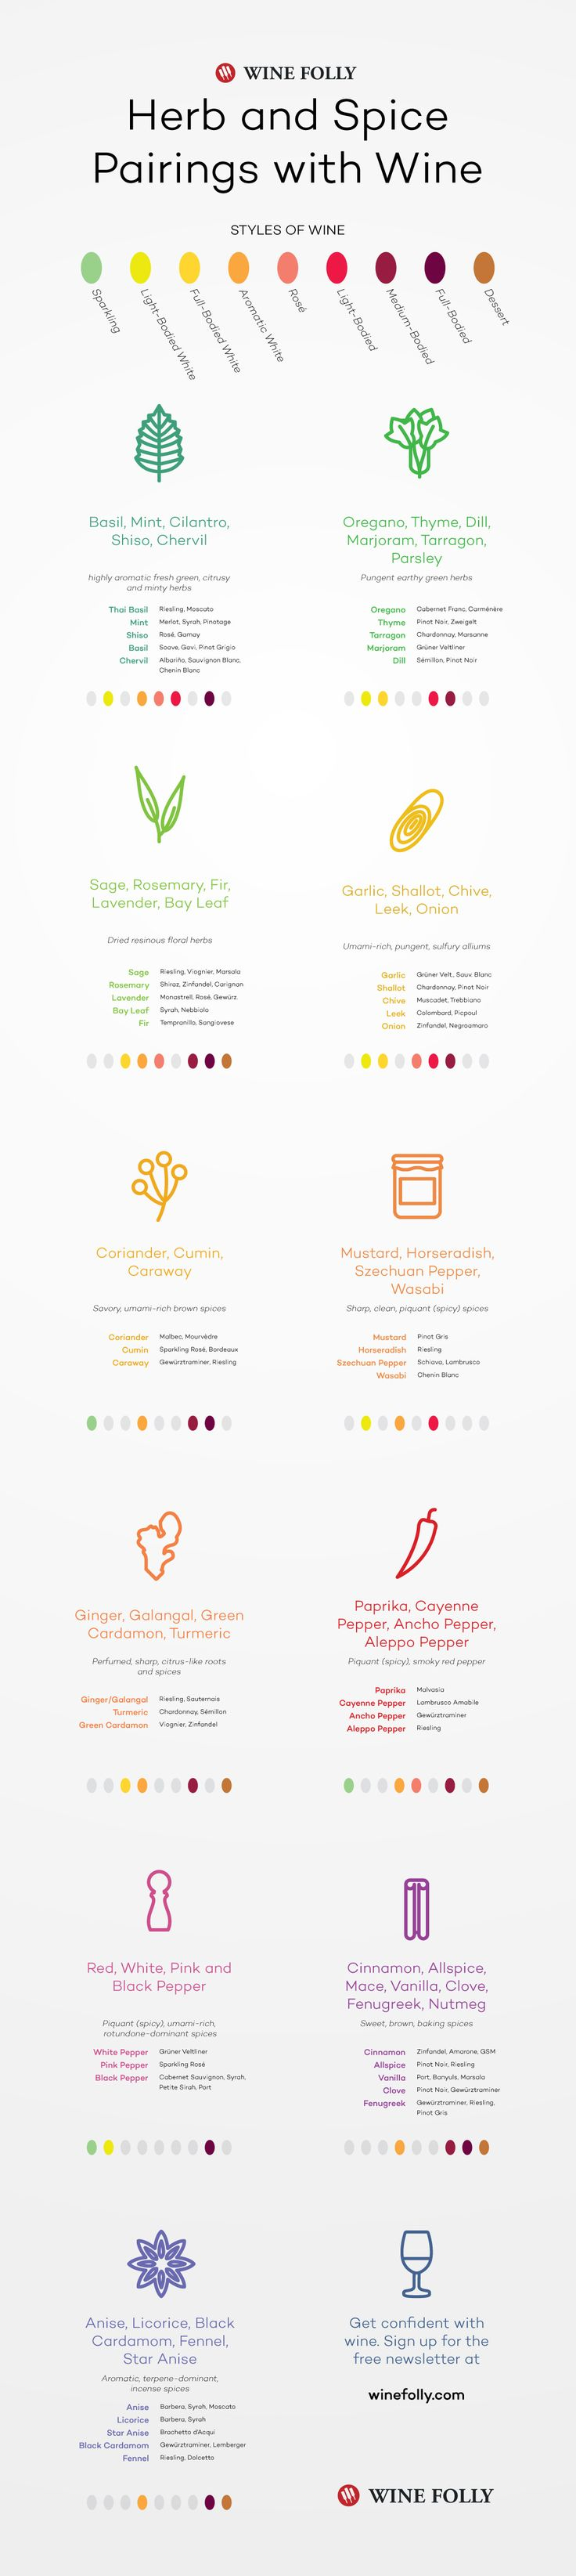 Great food and wine pairings always consider the spices and herbs.  Here is a great guide for pairing with different spices.   #foodandwine #winepairing #wine101 #winefolly